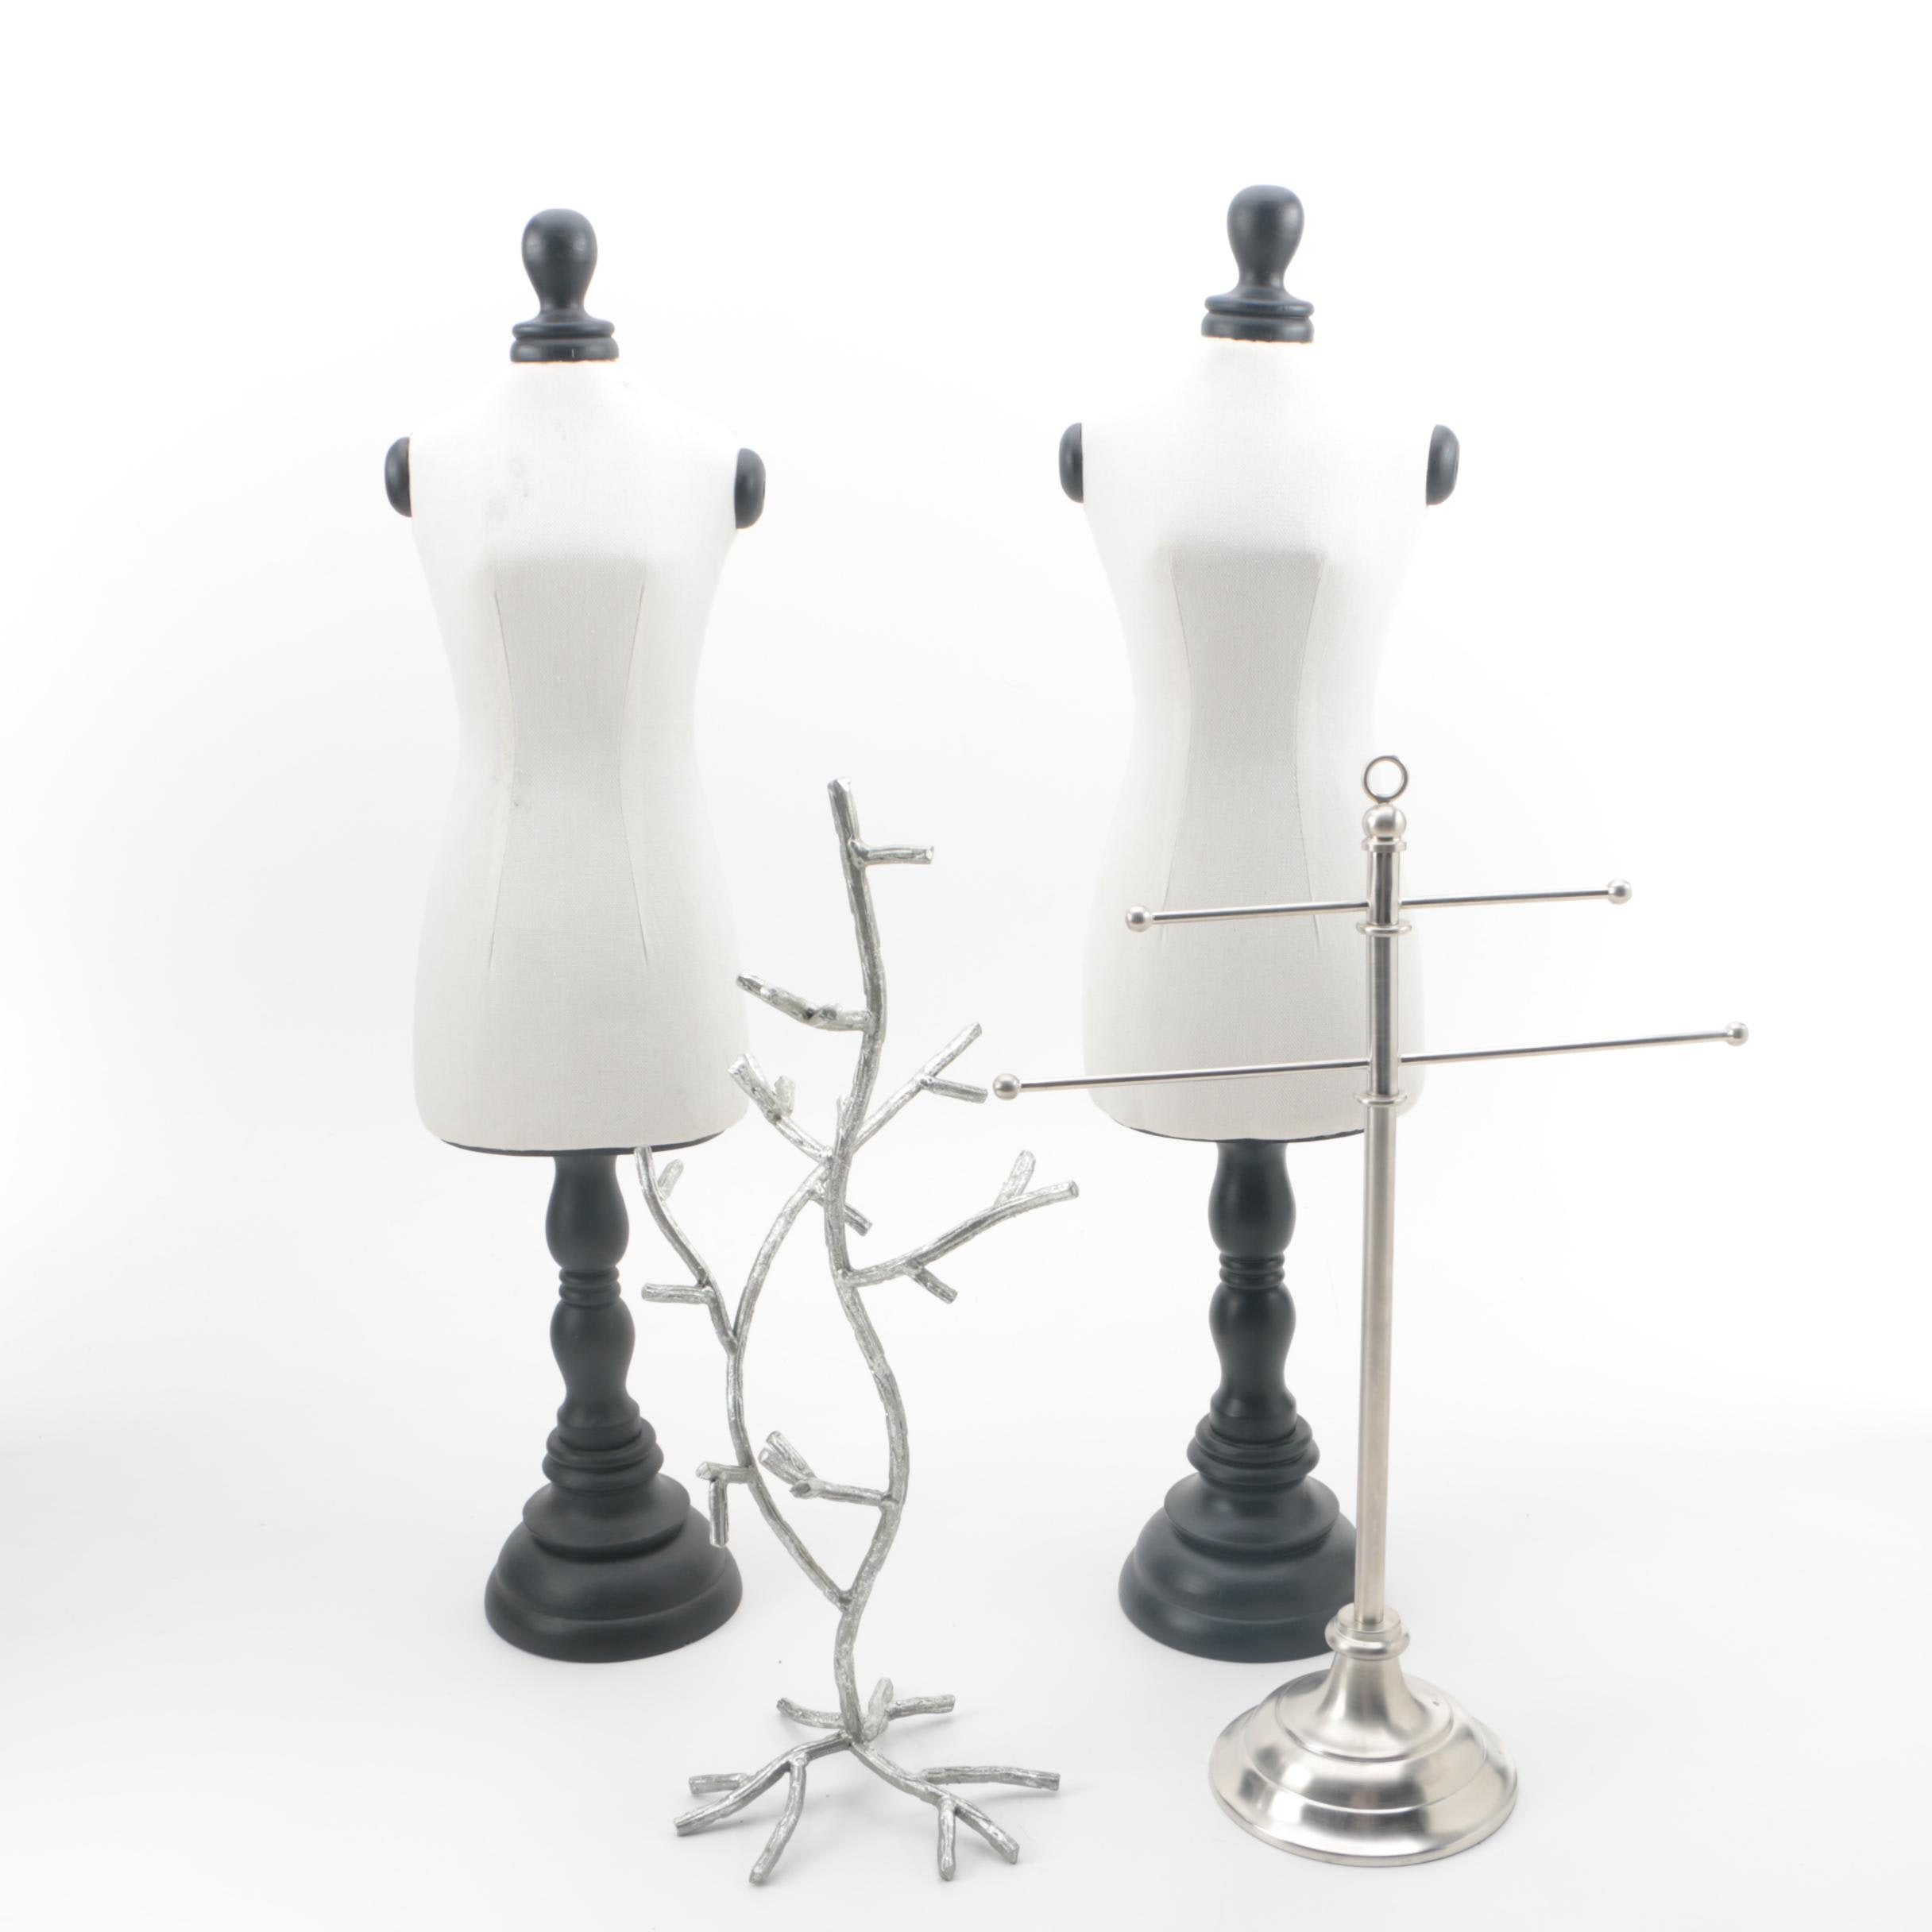 Jewelry Forms and Display Stands including Pottery Barn